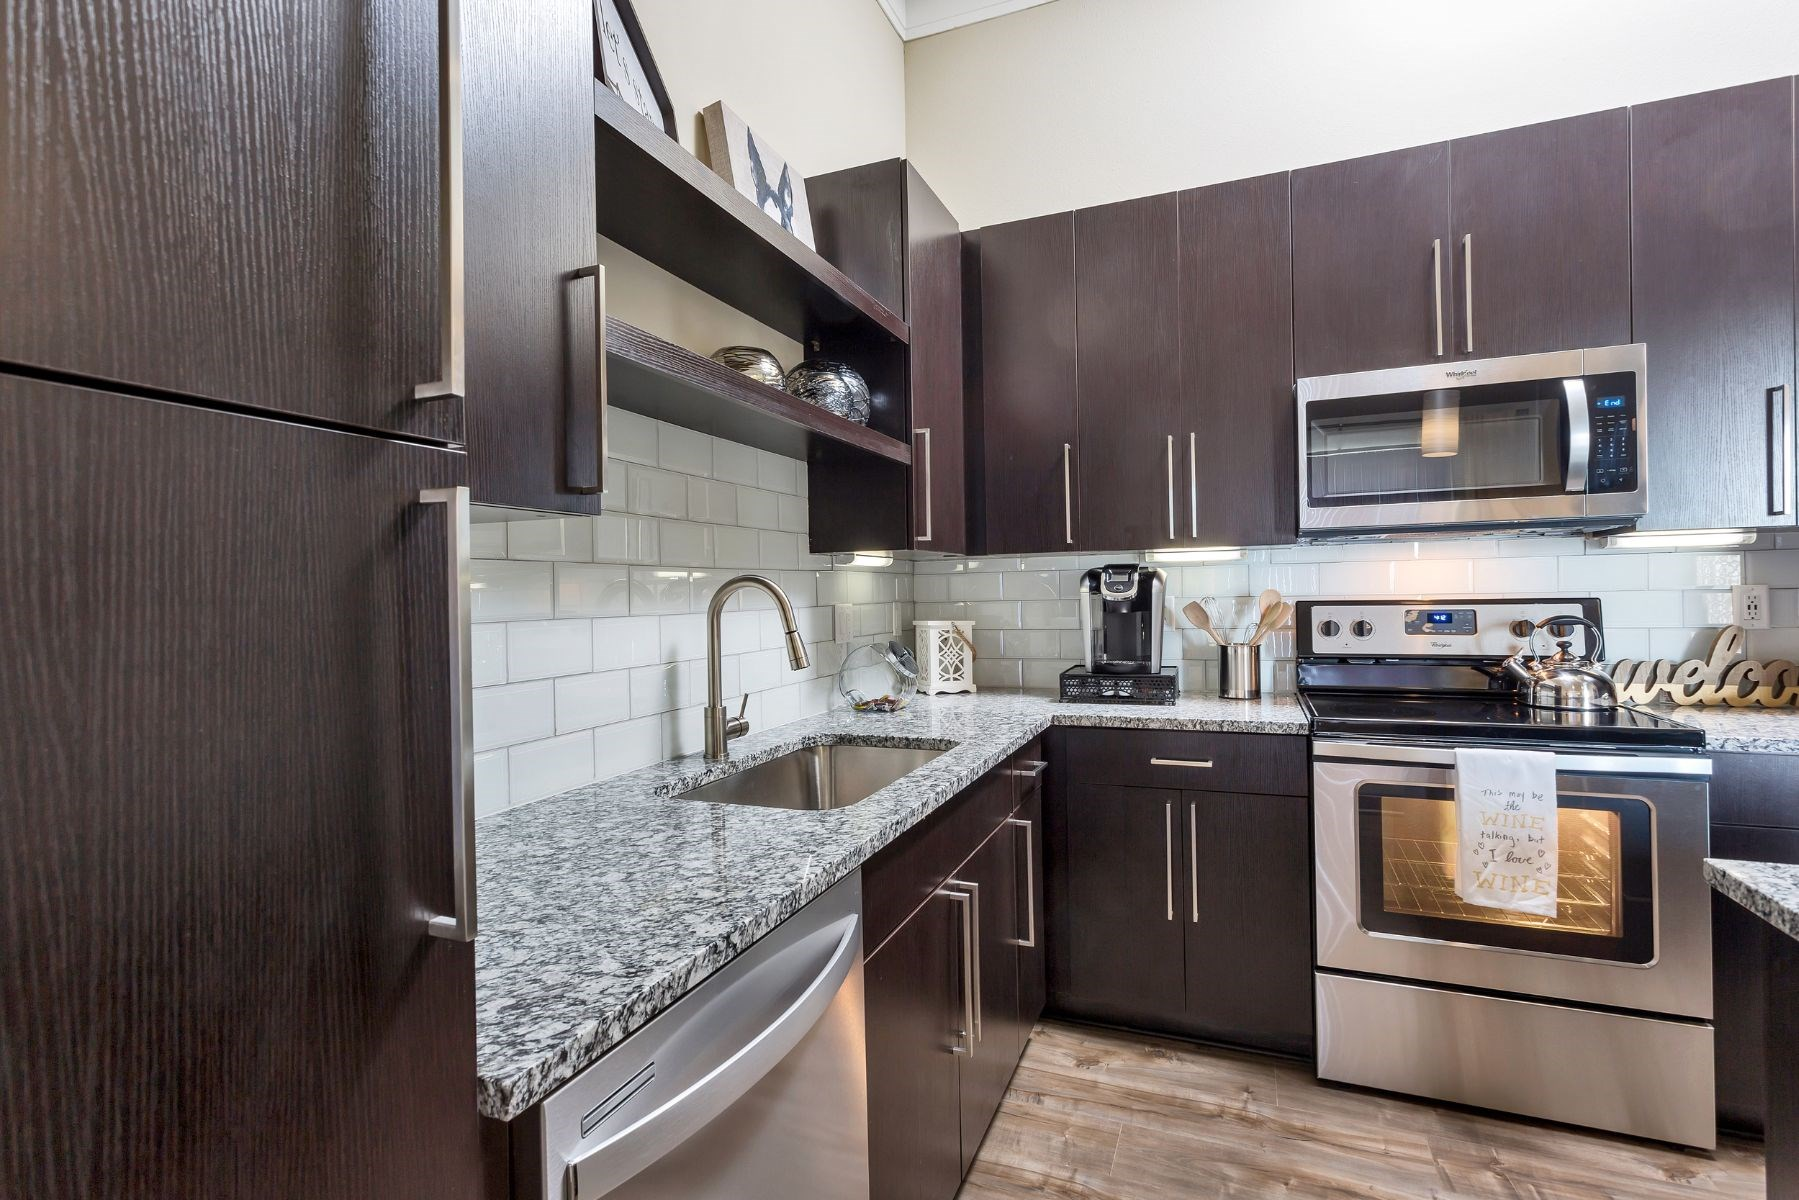 Westwood Green Apartments Kitchen with stainless appliances, grey quarts countertops, and white subway tile backsplash